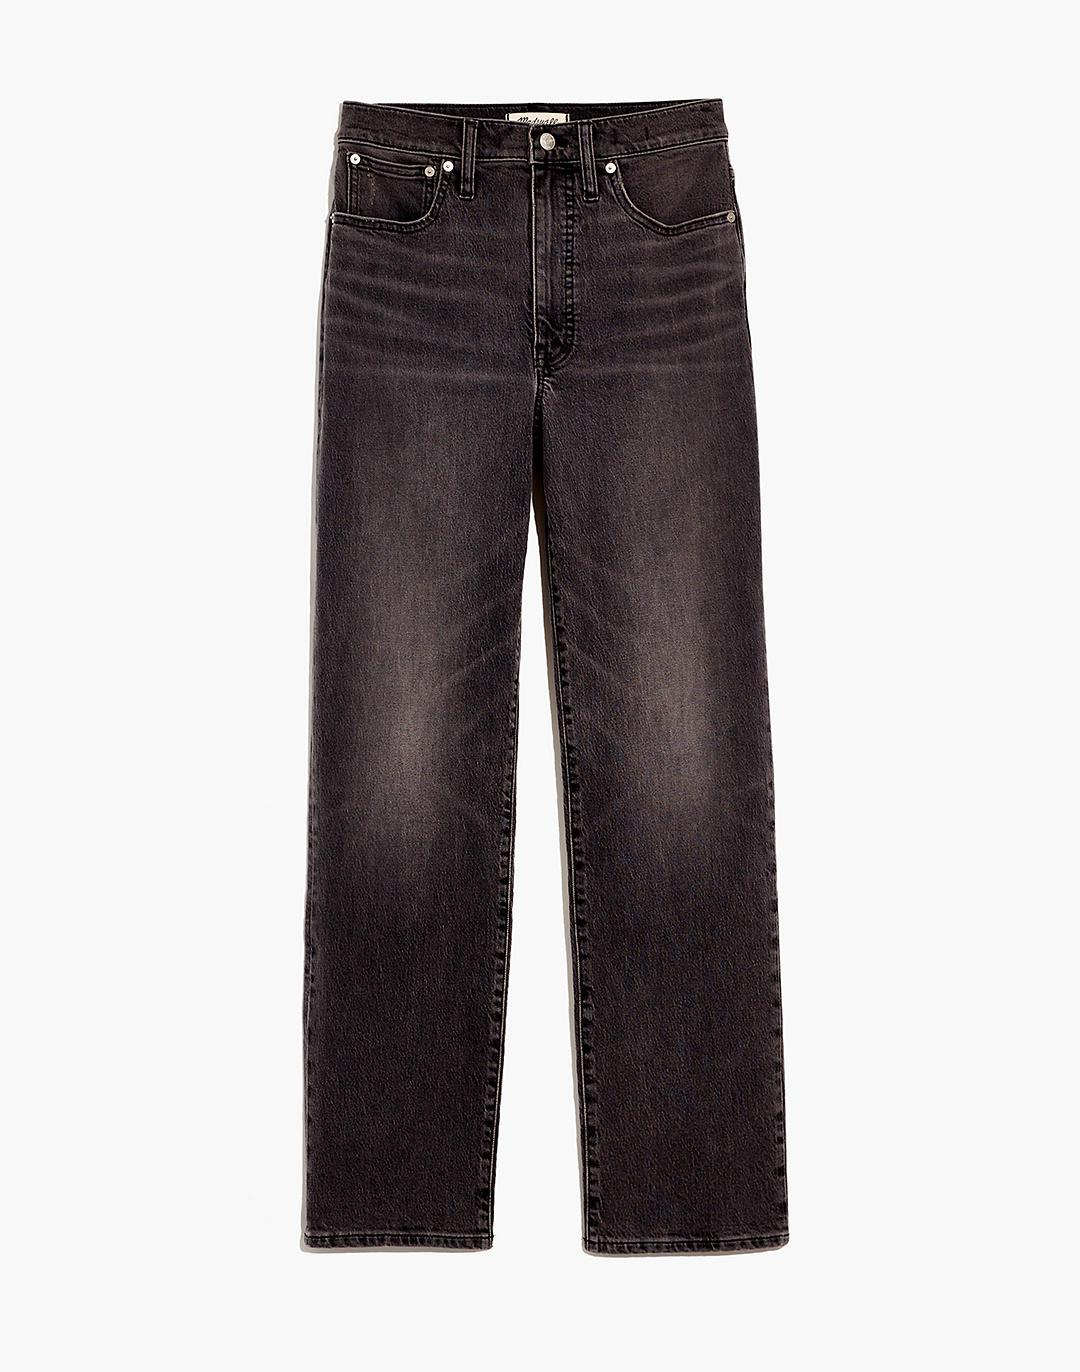 The Plus Perfect Vintage Straight Jean in Cosner Wash